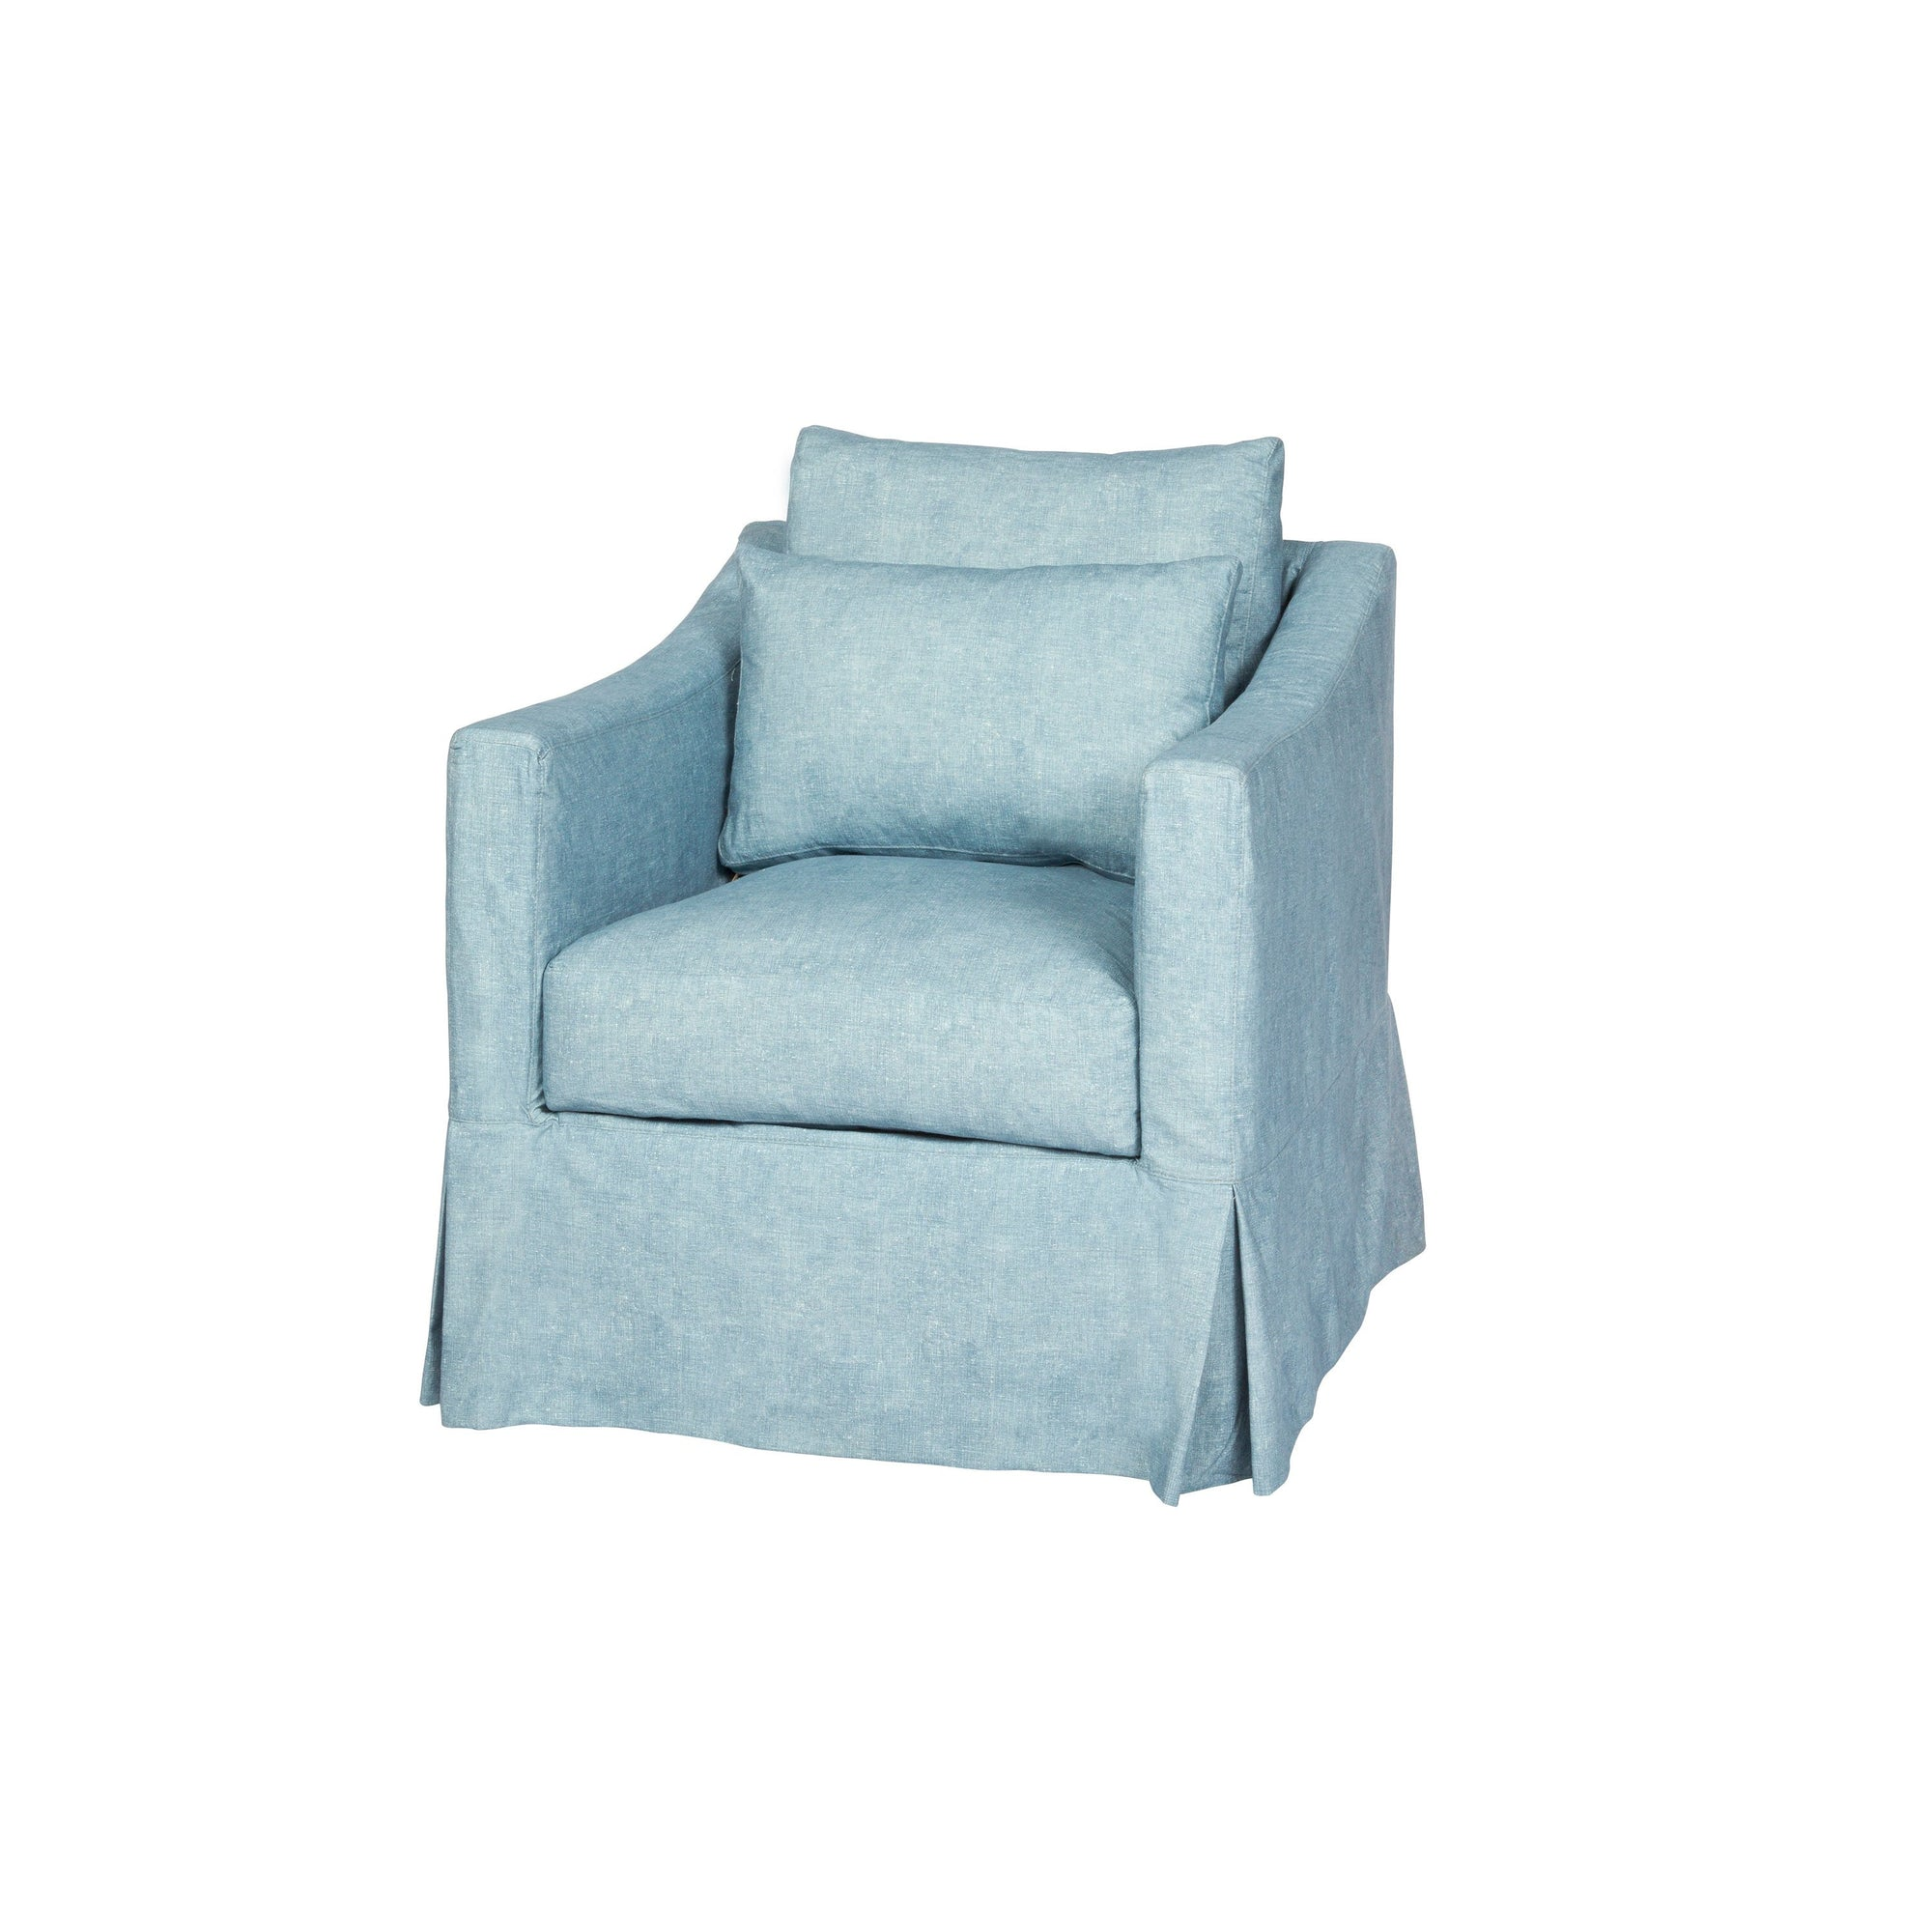 Cisco Brothers Rebecca Chairs Essentials - In Store-Cisco Brothers-Blue Hand Home